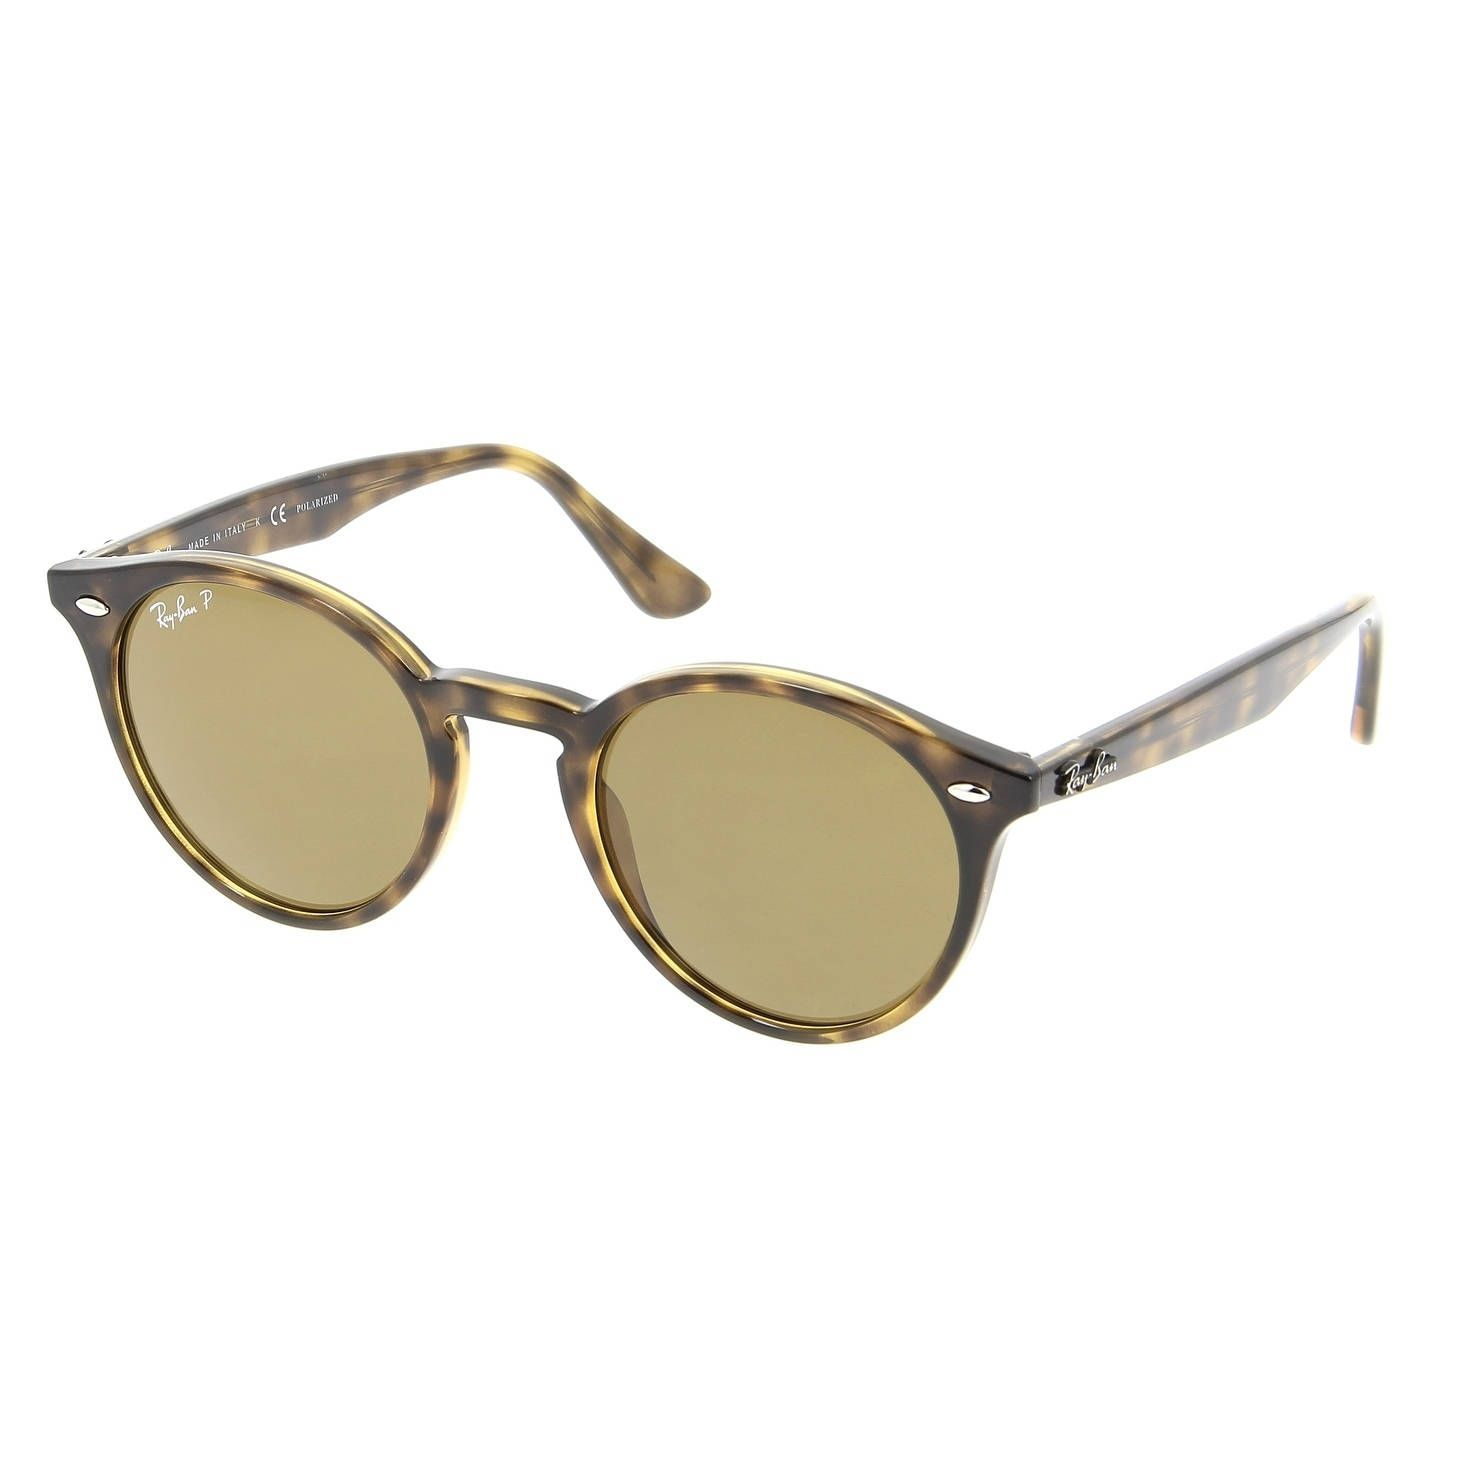 60bea6f4470 Ray-Ban Round Classic Tortoise Brown Polarized Sunglasses Sunglasses  RB2180-710 83-